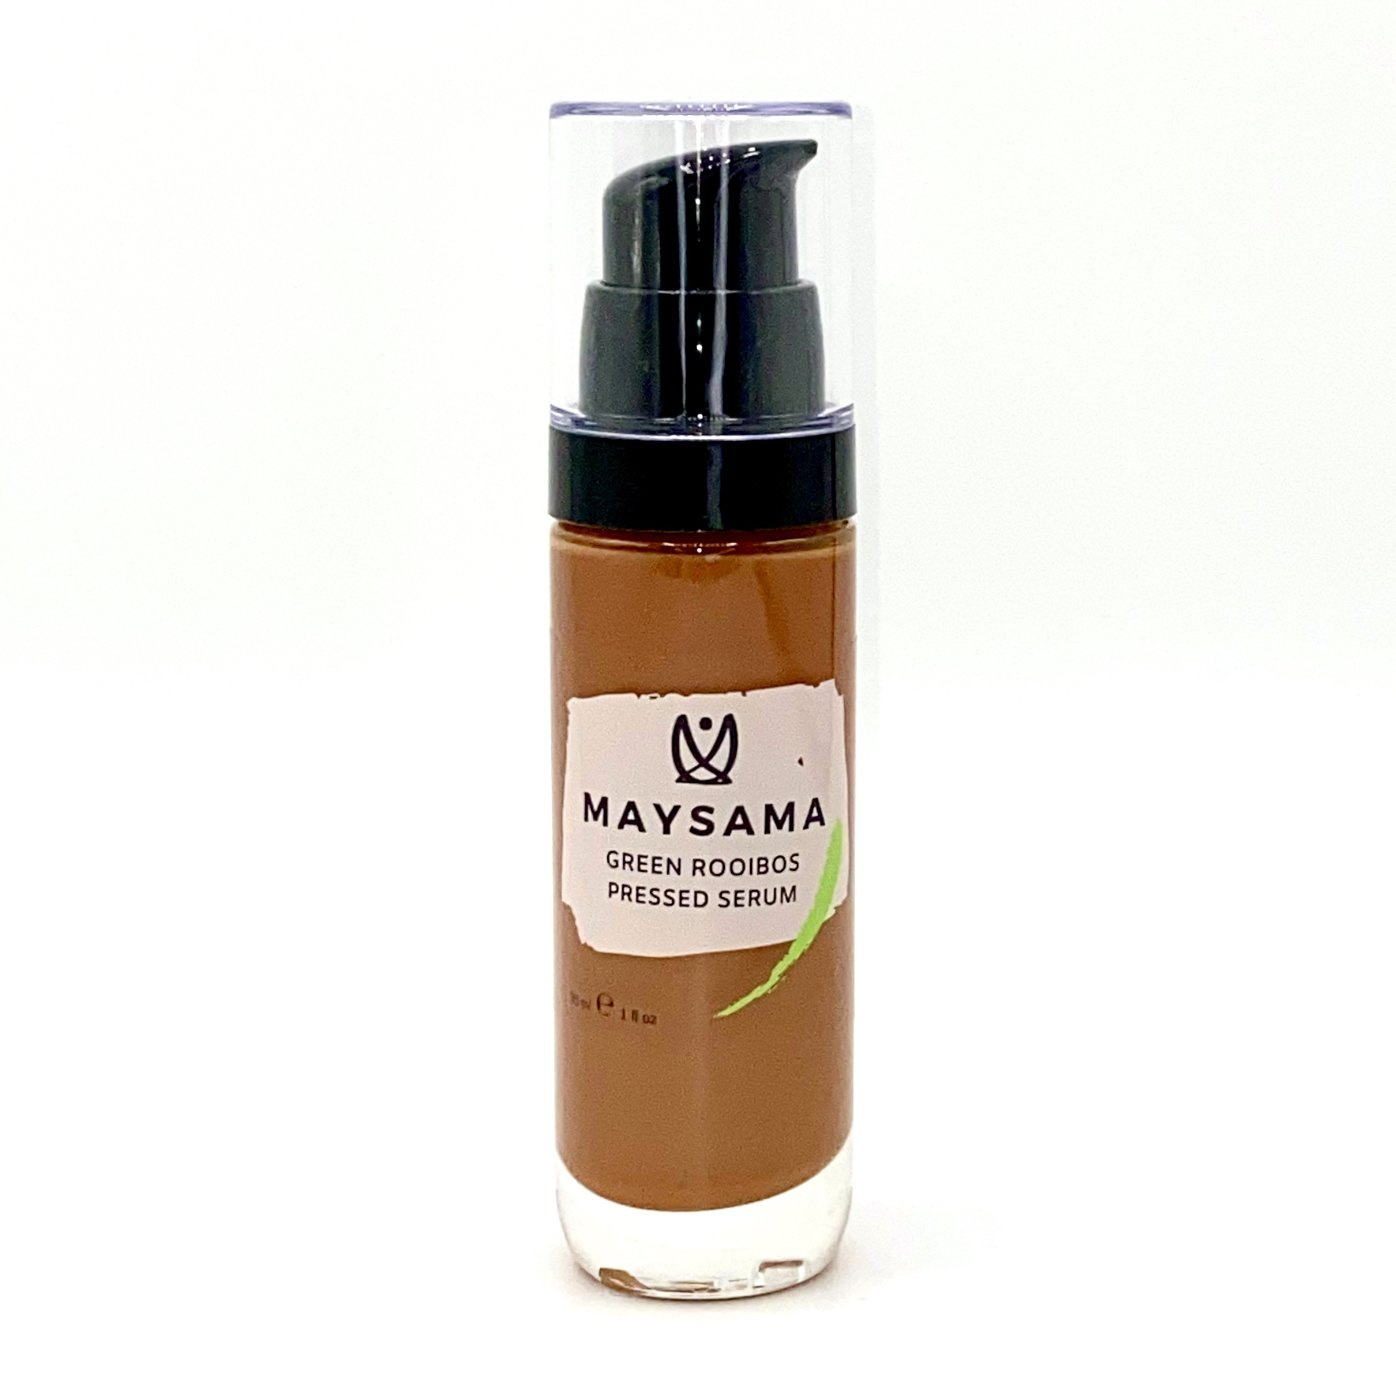 Maysama Green Rooibos Pressed Serum